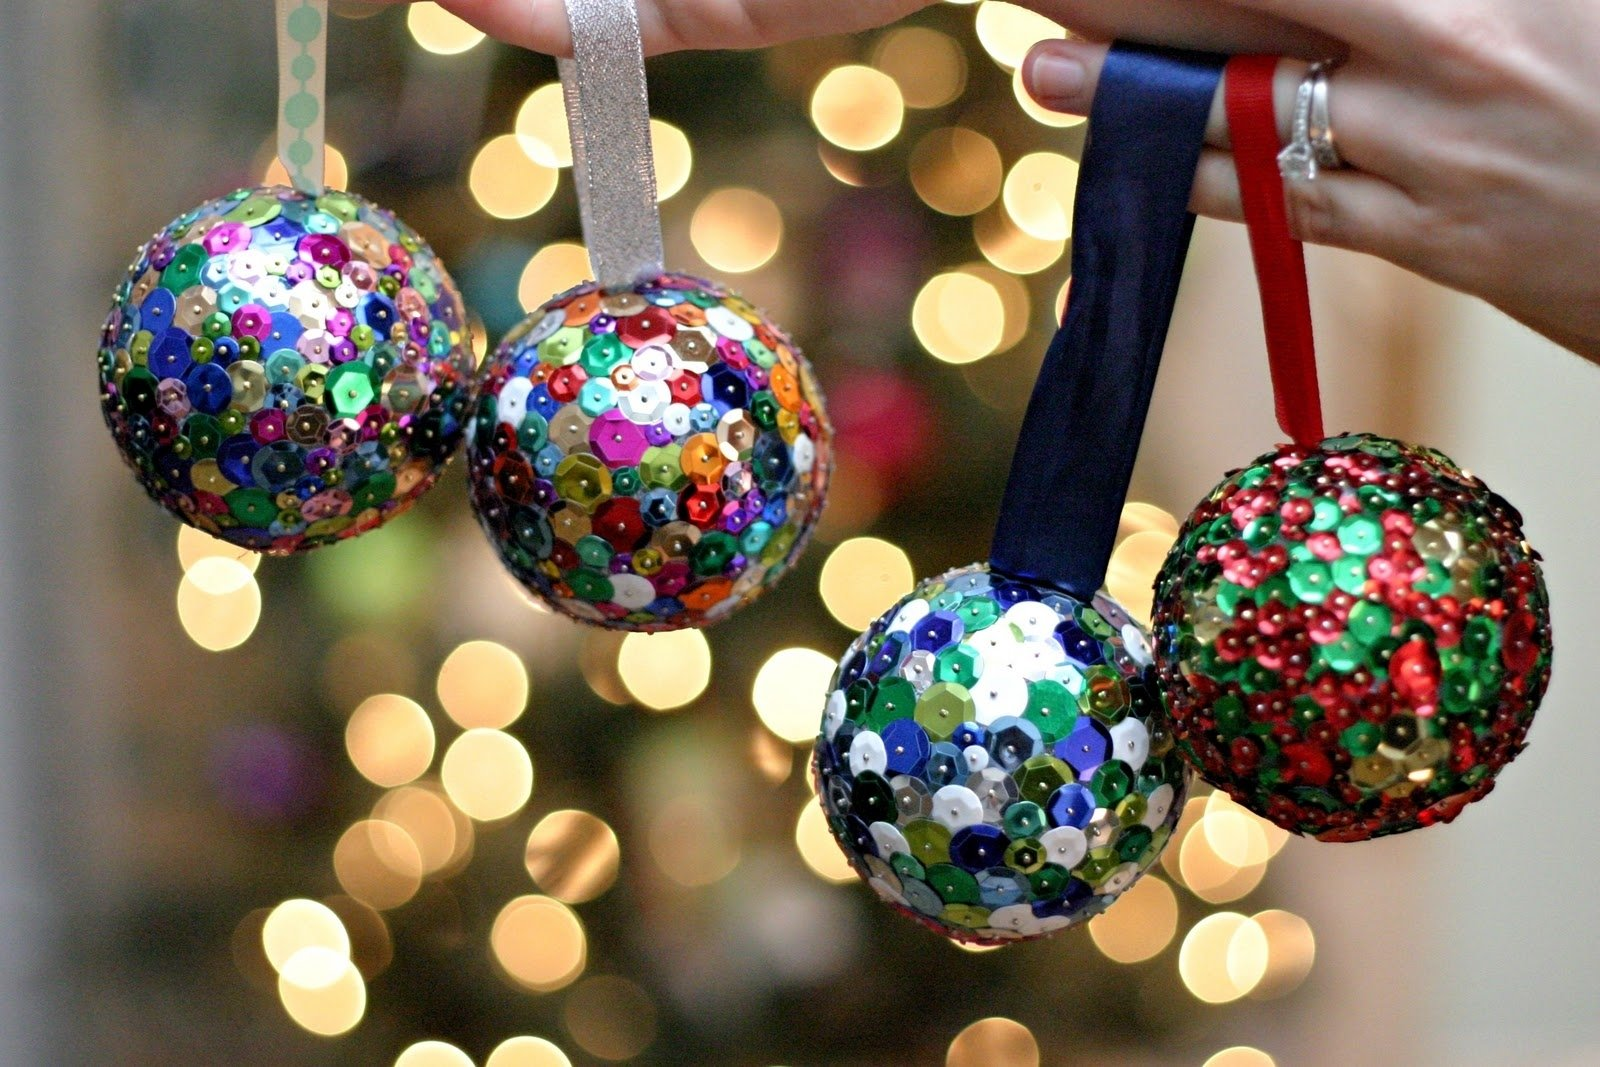 10 Most Popular Make Your Own Ornaments Ideas a make your own ornament party taylormade 2021